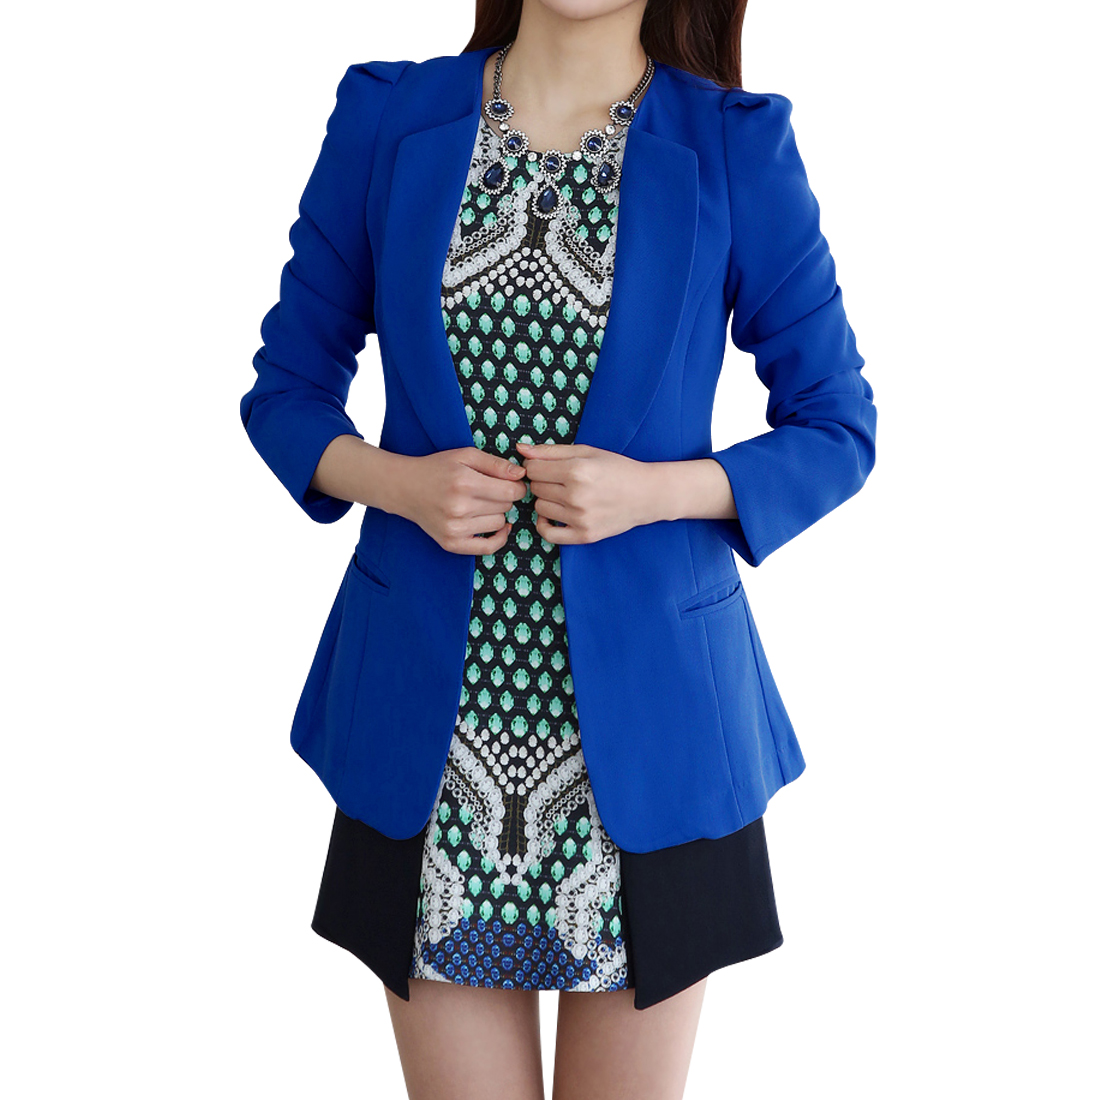 Women Fashionable Peaked Lapel Slim Fit Blazer Royal Blue XS